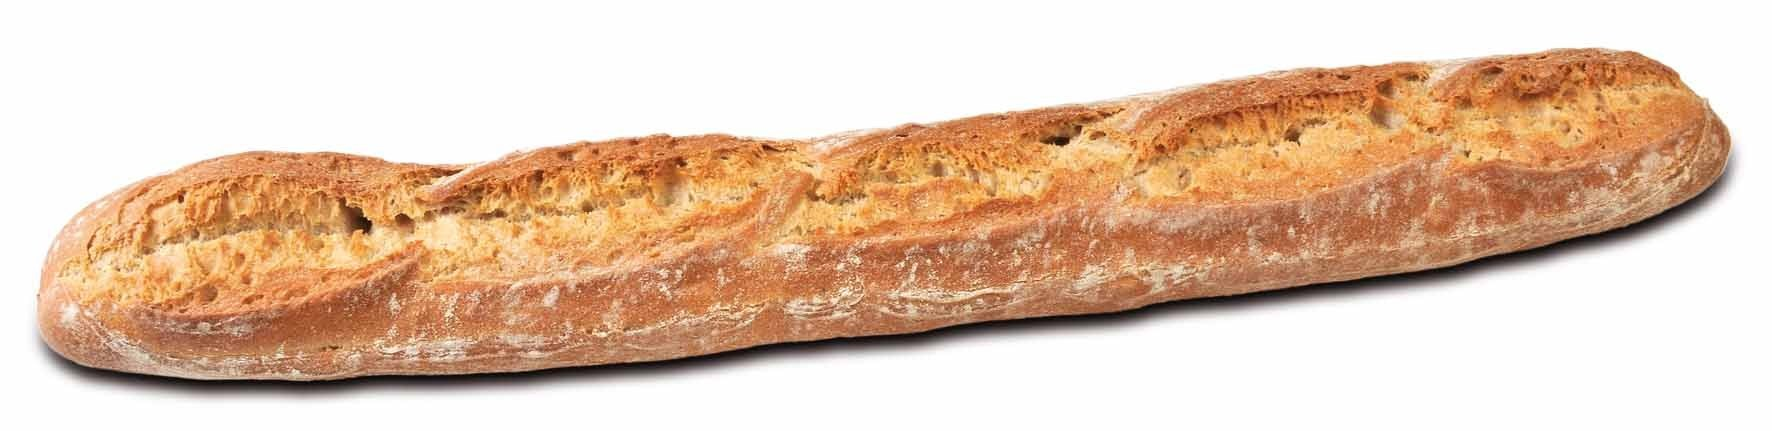 Productafbeelding Stokbrood Campagne 430 g